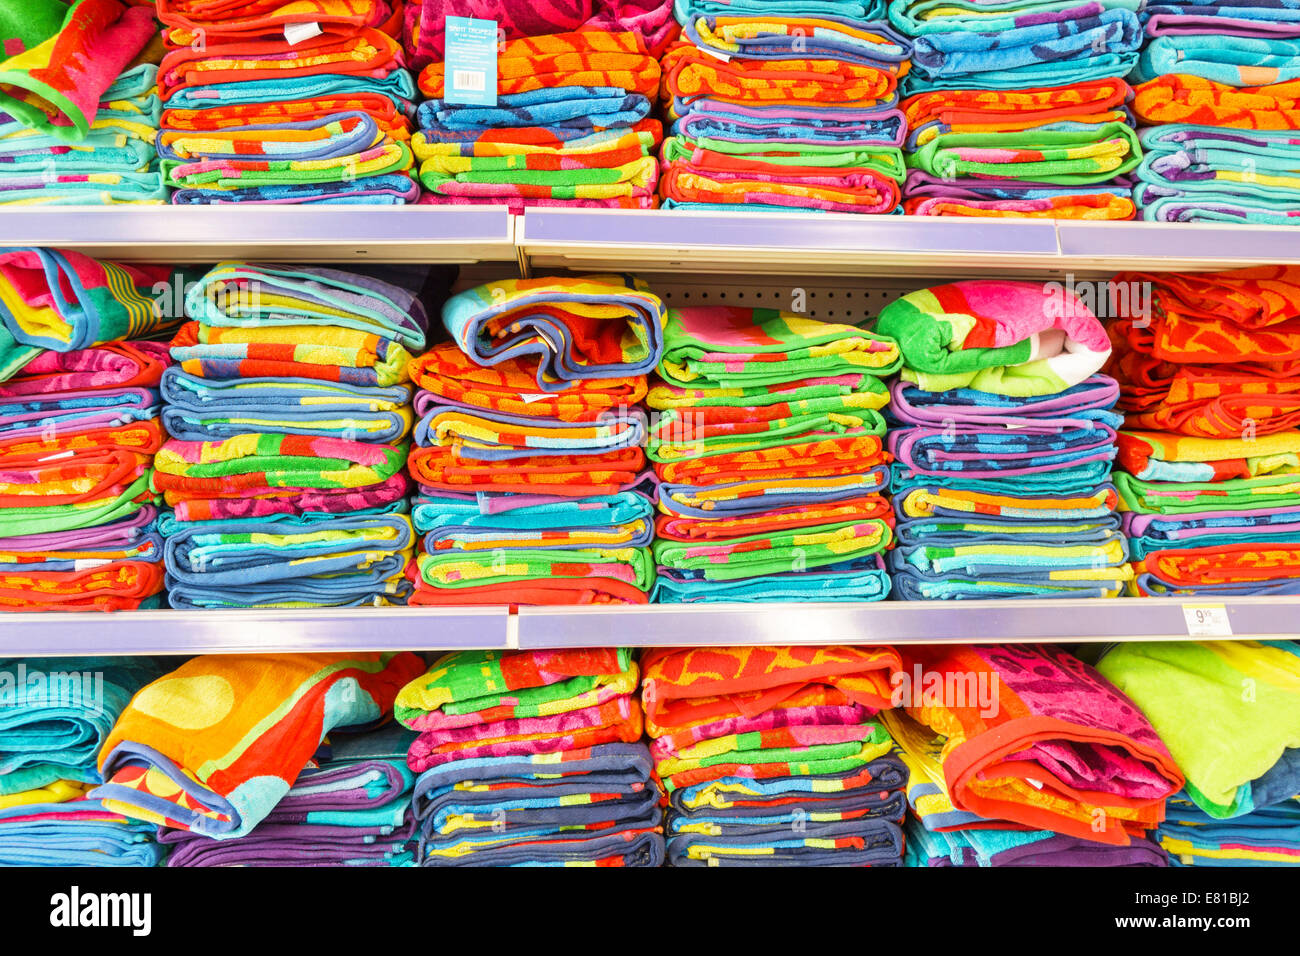 Beach Towels Stock Photos & Beach Towels Stock Images - Alamy